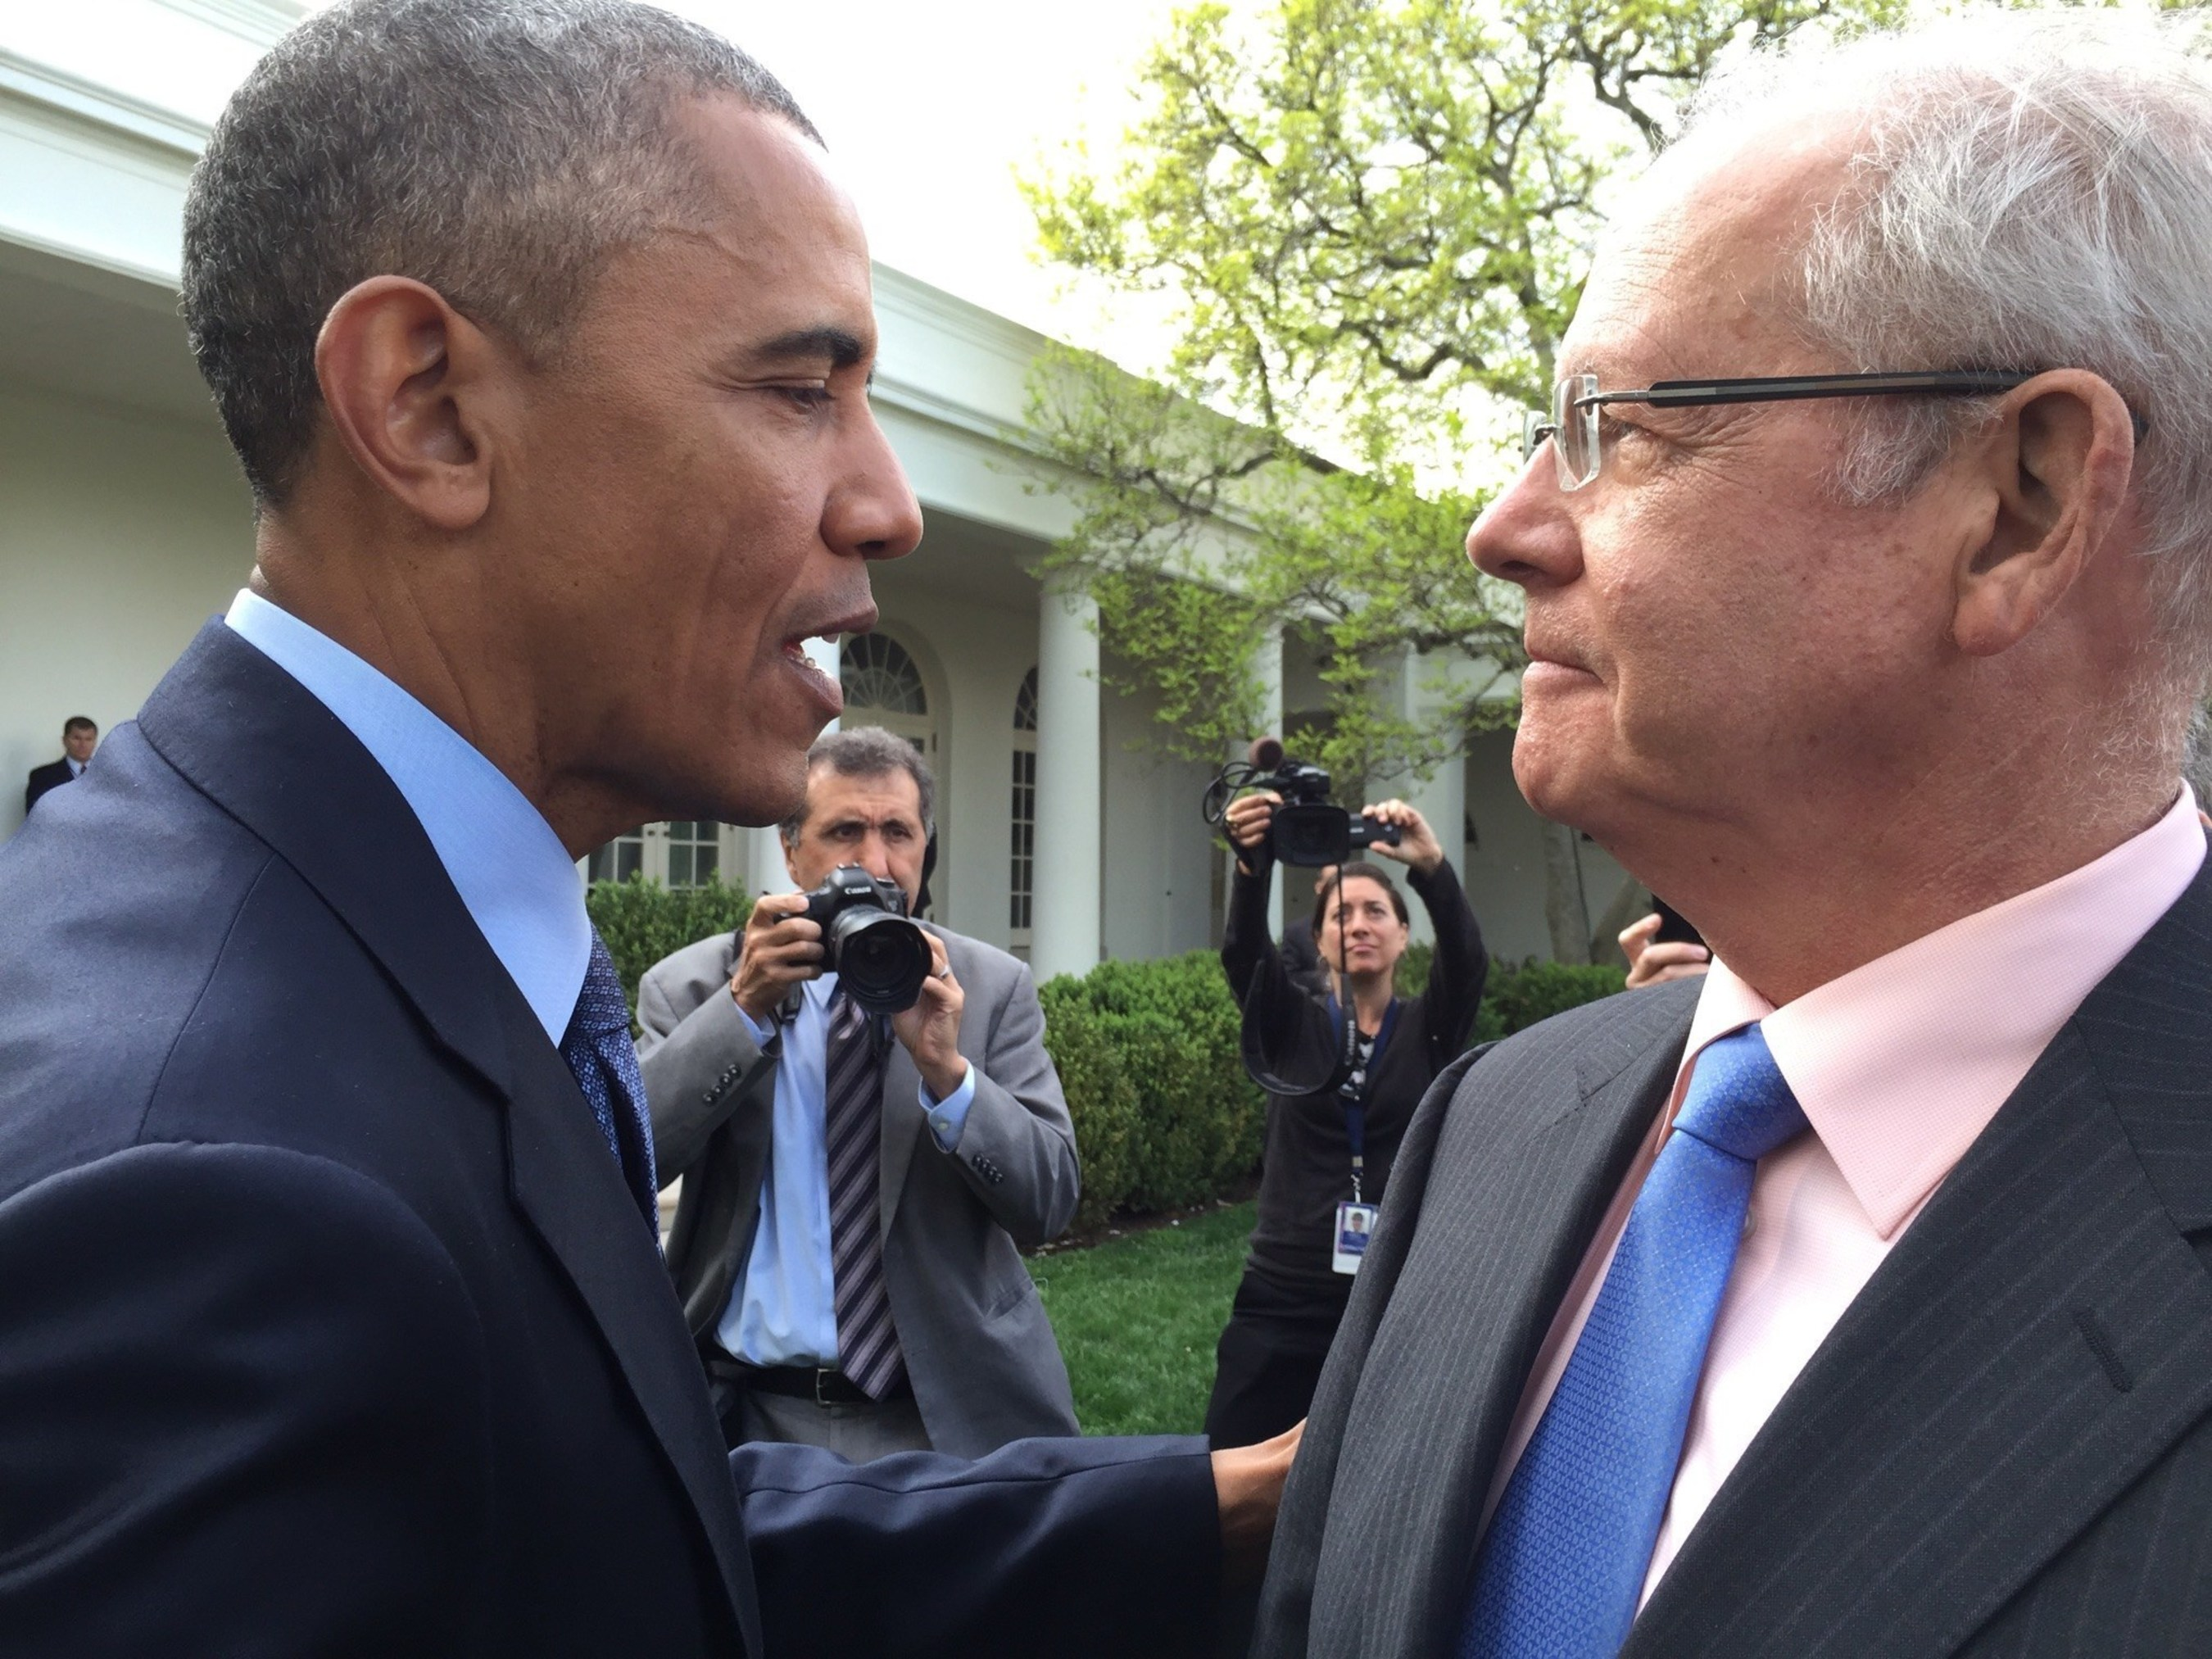 """President Barack Obama and David W. Parke II, M.D. (pictured right), CEO of the American Academy of Ophthalmology, at ceremony celebrating the enactment of the overwhelmingly bipartisan law reforming Medicare physician pay yesterday."""" (Photo credit: Saul Levin, M.D.)"""